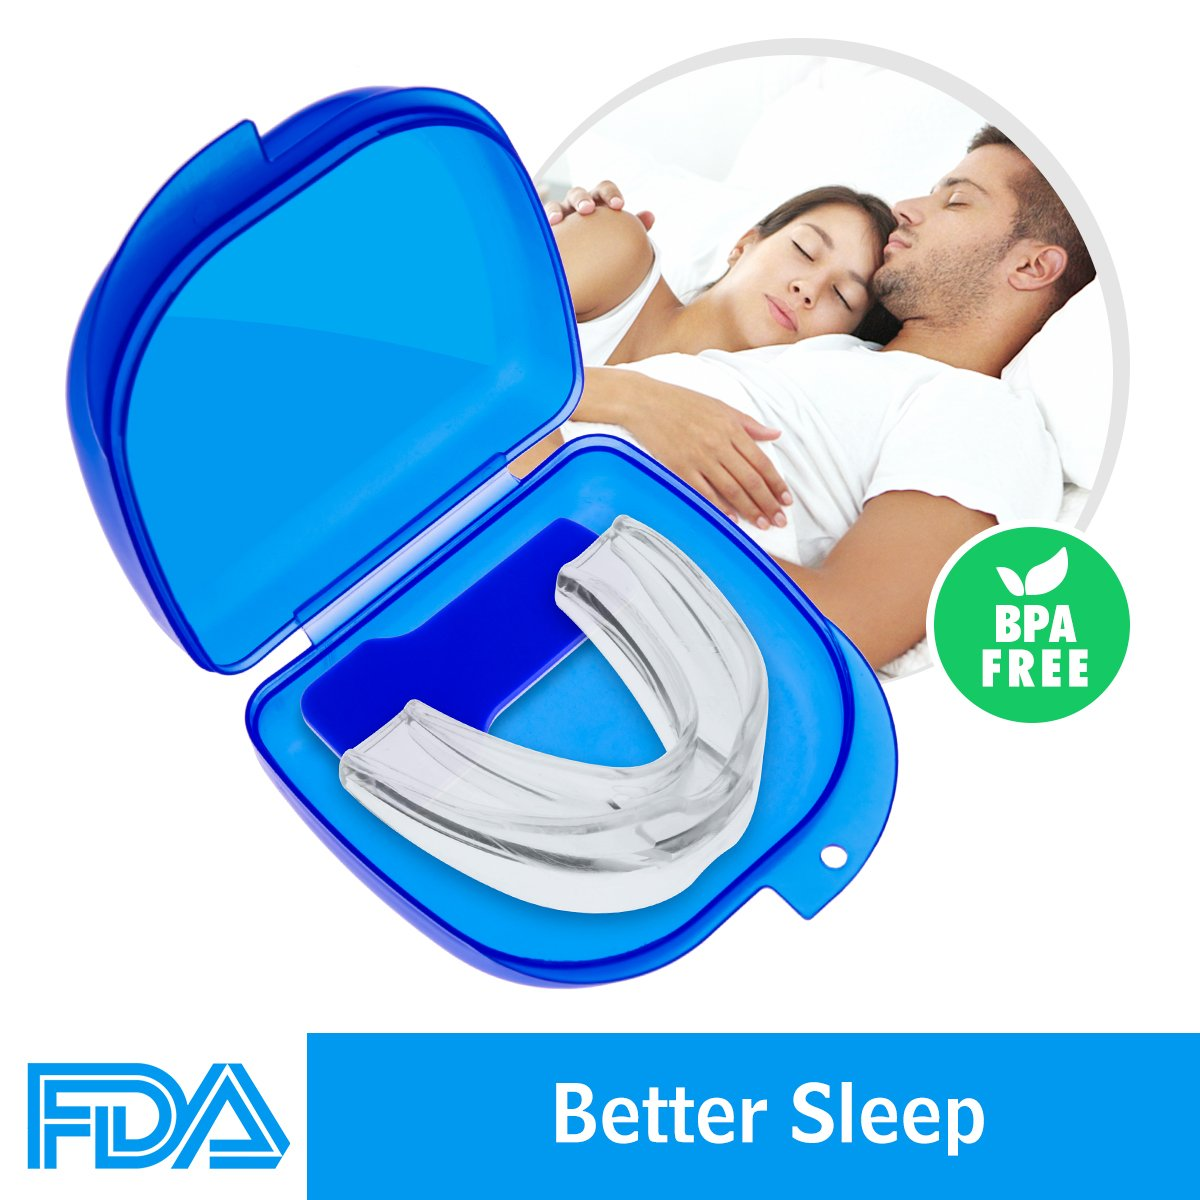 Airror Mouth Guards for Teeth Grinding, 2018 UPGRADED Anti Snoring Devices Aid Snore Reducing for Natural and Comfortable Sleep Vandora